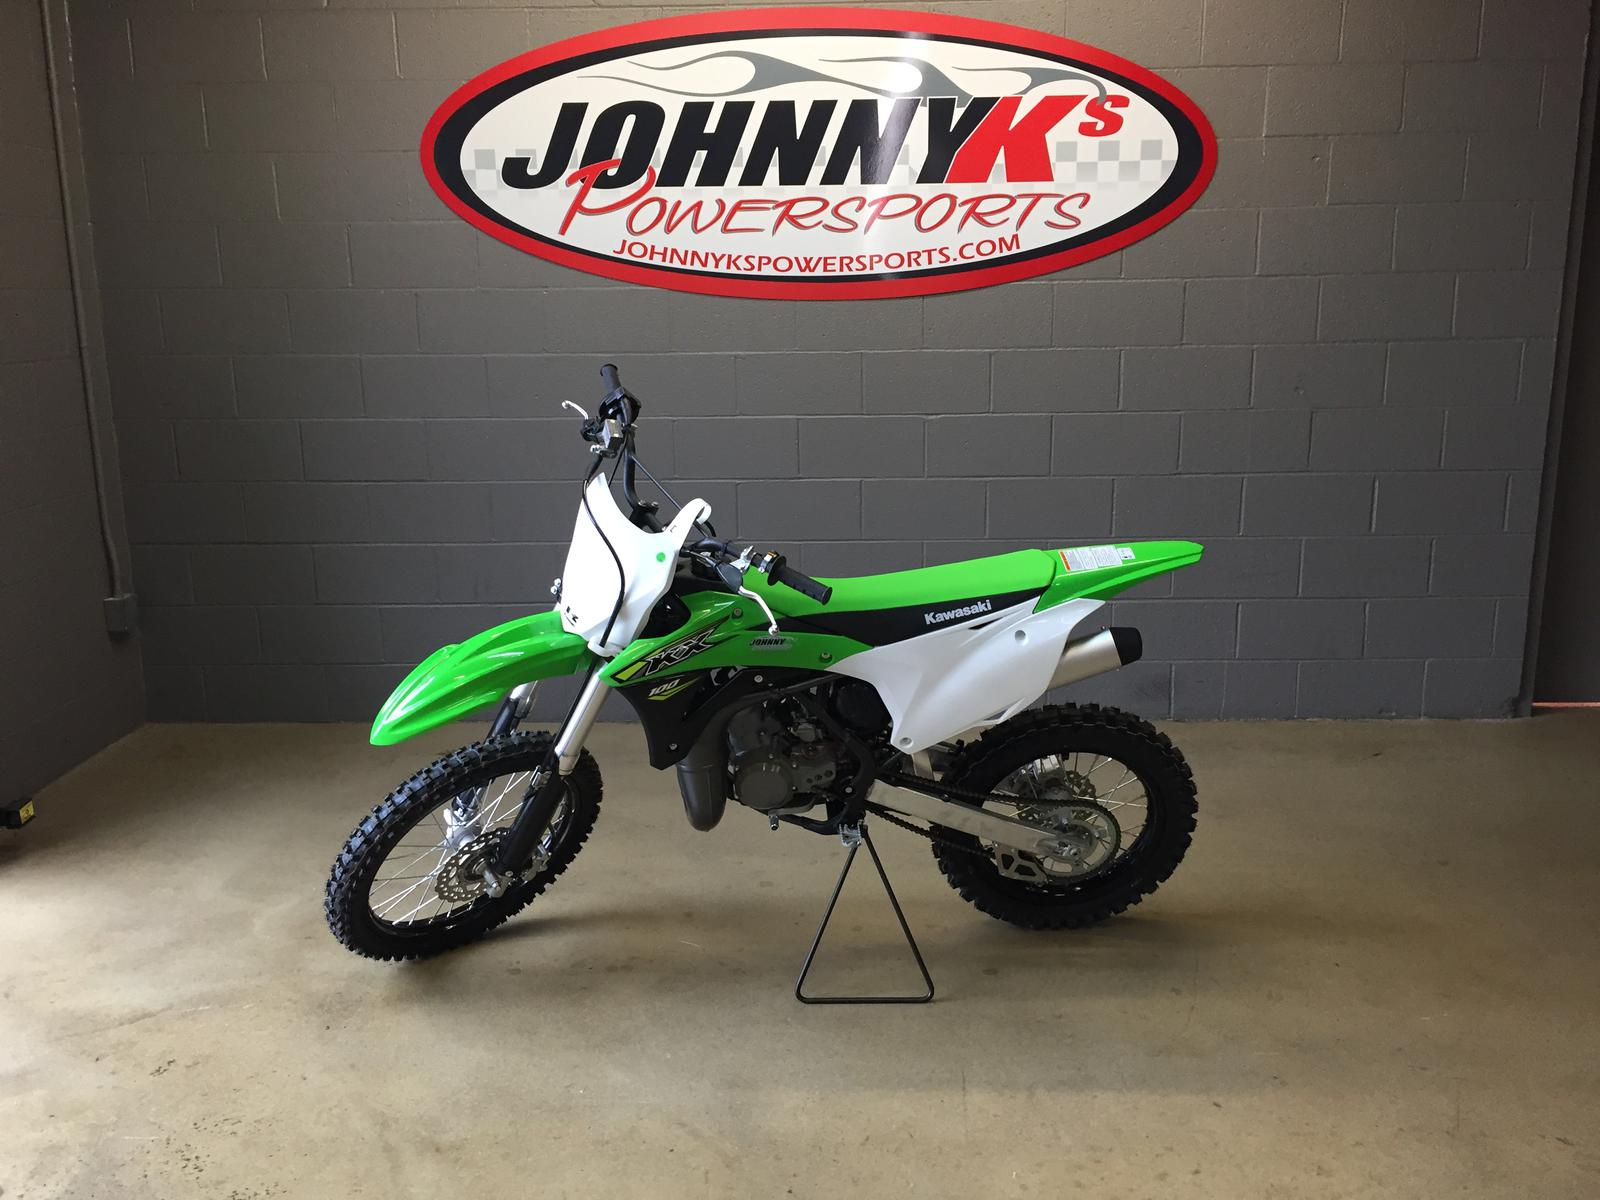 Inventory from Kawasaki Johnny K's Powersports